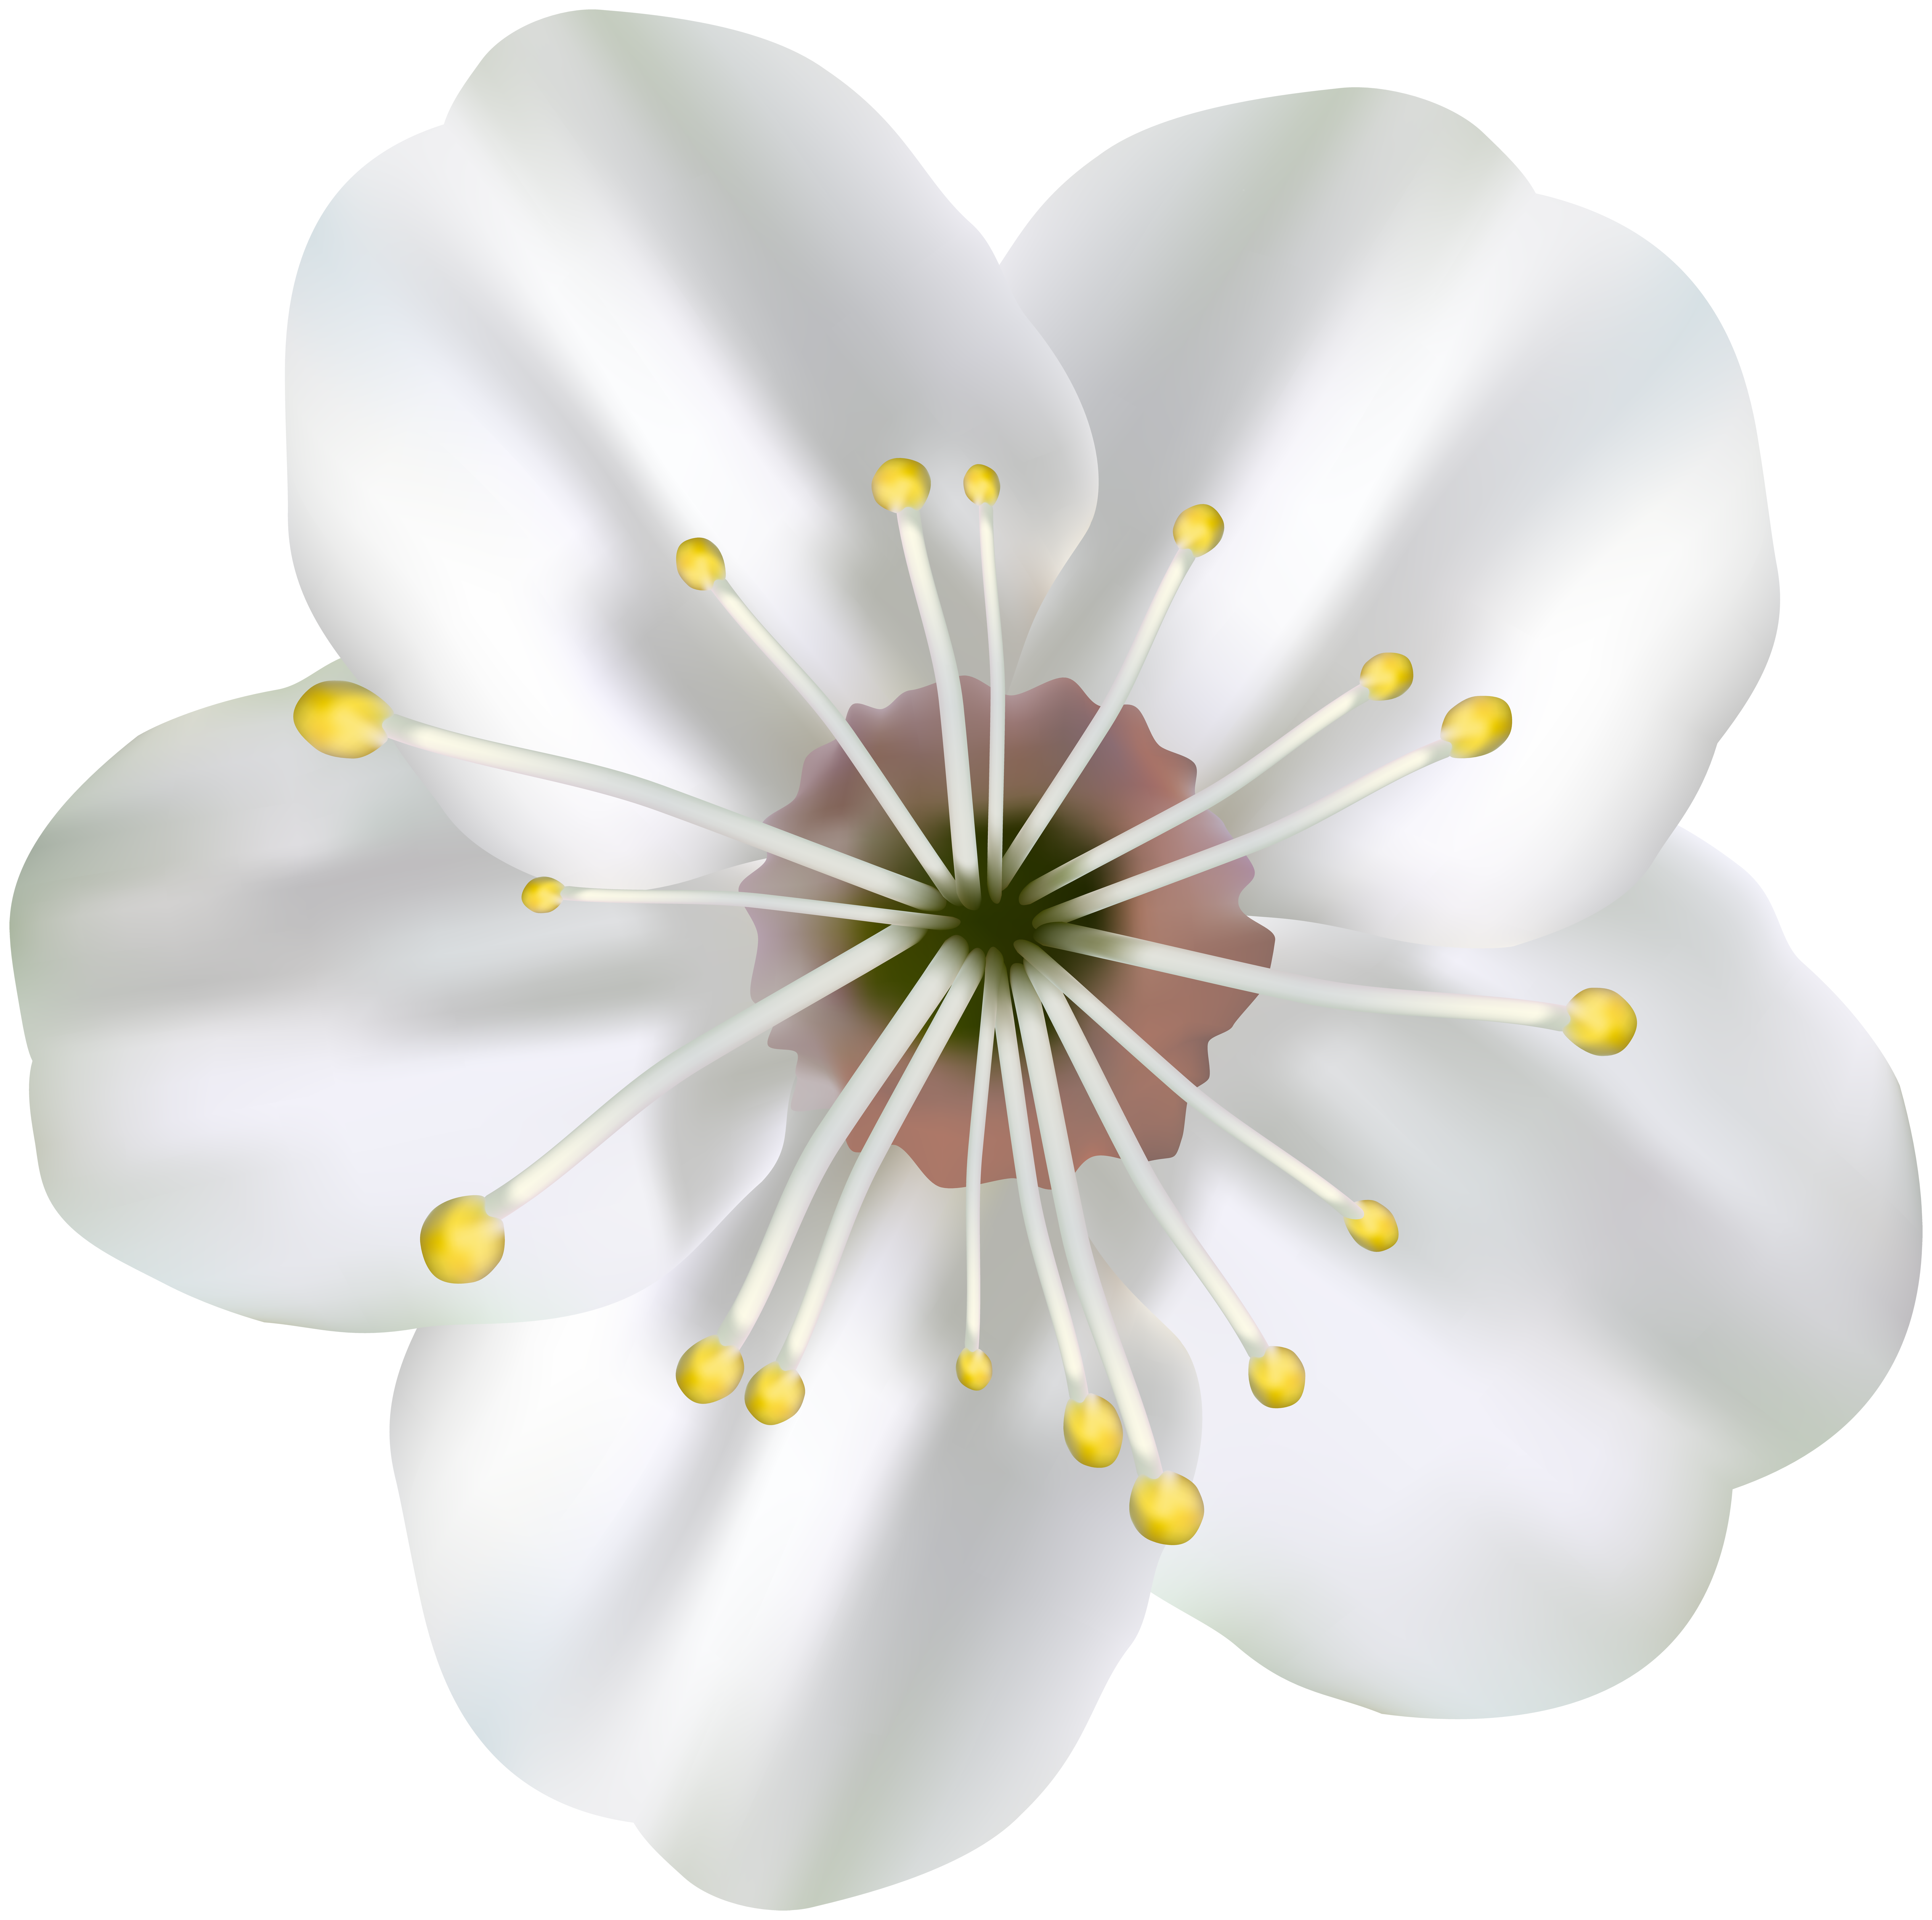 Blooming flower clipart free library Spring Blooming Flower PNG Clip Art Image | Gallery Yopriceville ... free library